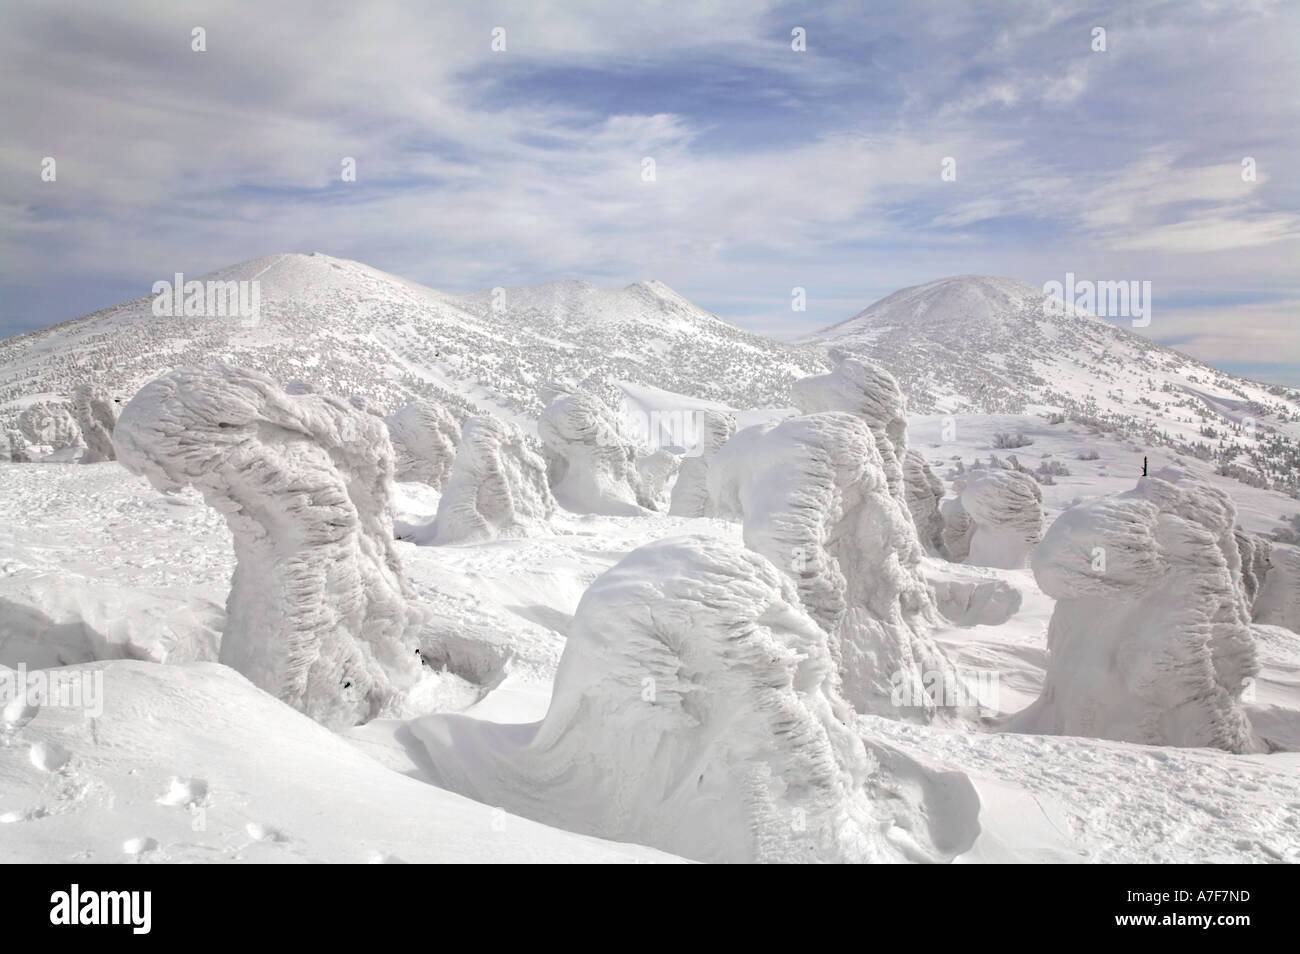 Snow Monsters - Trees with snow frozen on to them in winter Mount Hakkoda Japan Stock Foto